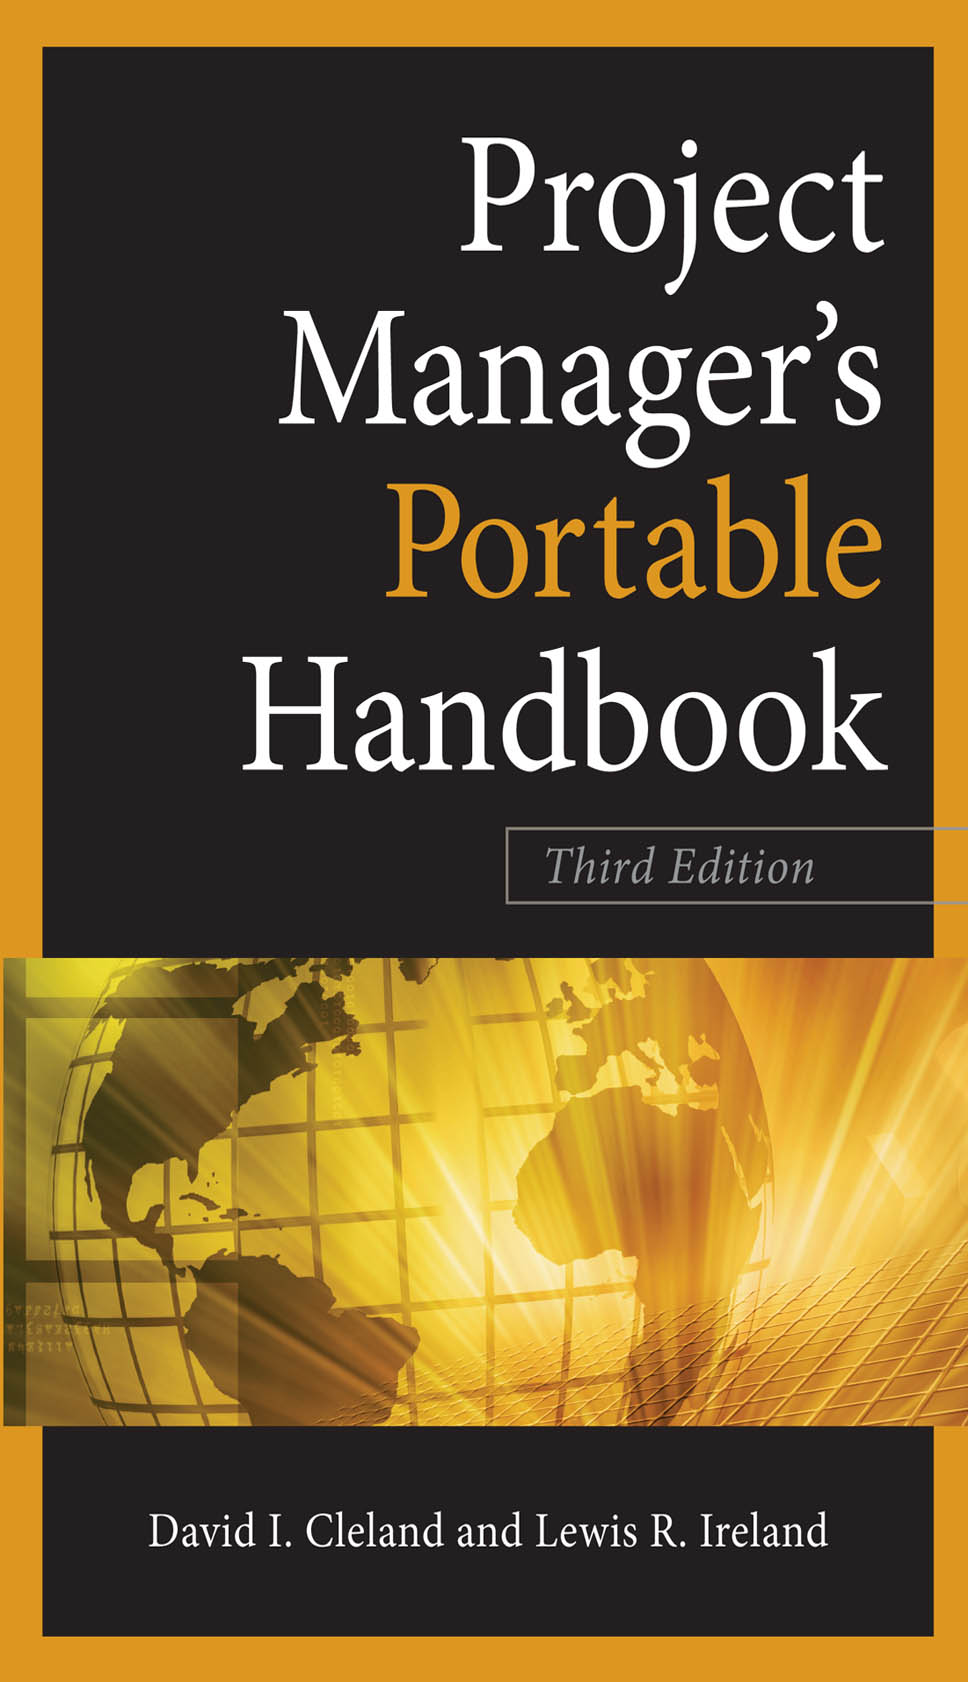 Download Ebook Project Managers Portable Handbook, Third Edition (3rd ed.) by David L. Cleland Pdf